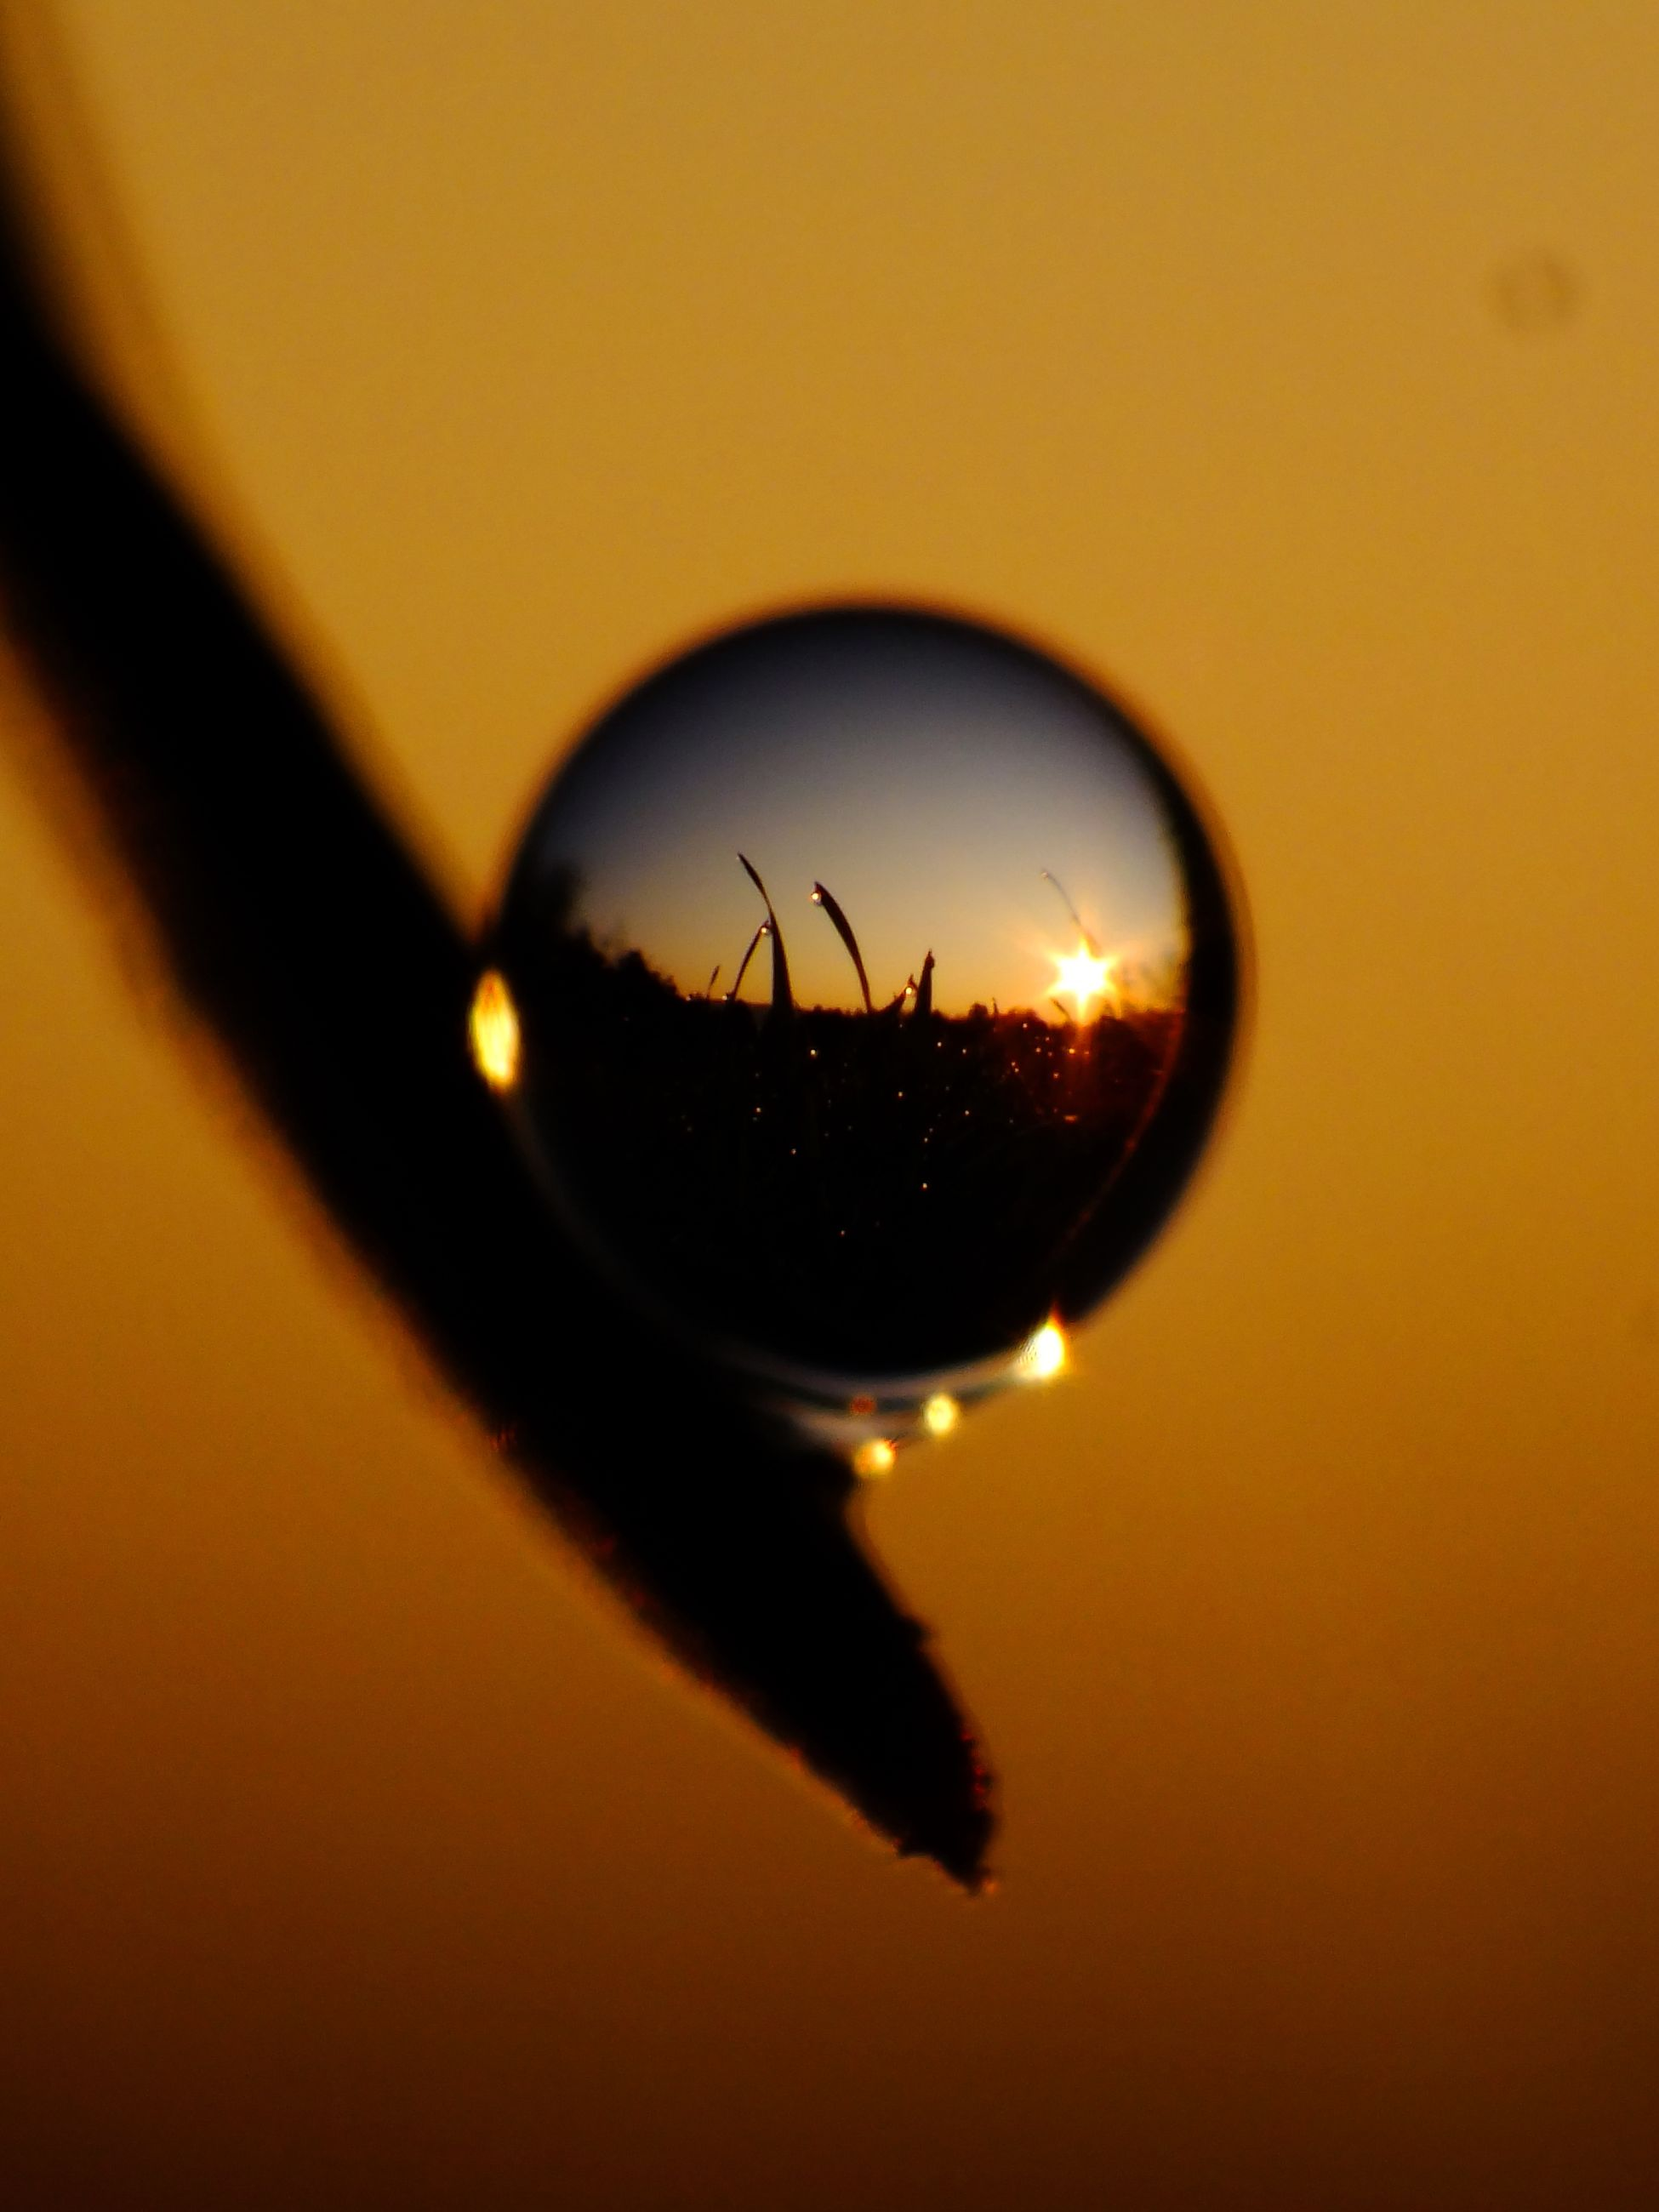 transparent, glass - material, indoors, close-up, reflection, sunset, focus on foreground, drop, lighting equipment, orange color, illuminated, light bulb, circle, no people, electricity, selective focus, single object, window, hanging, water